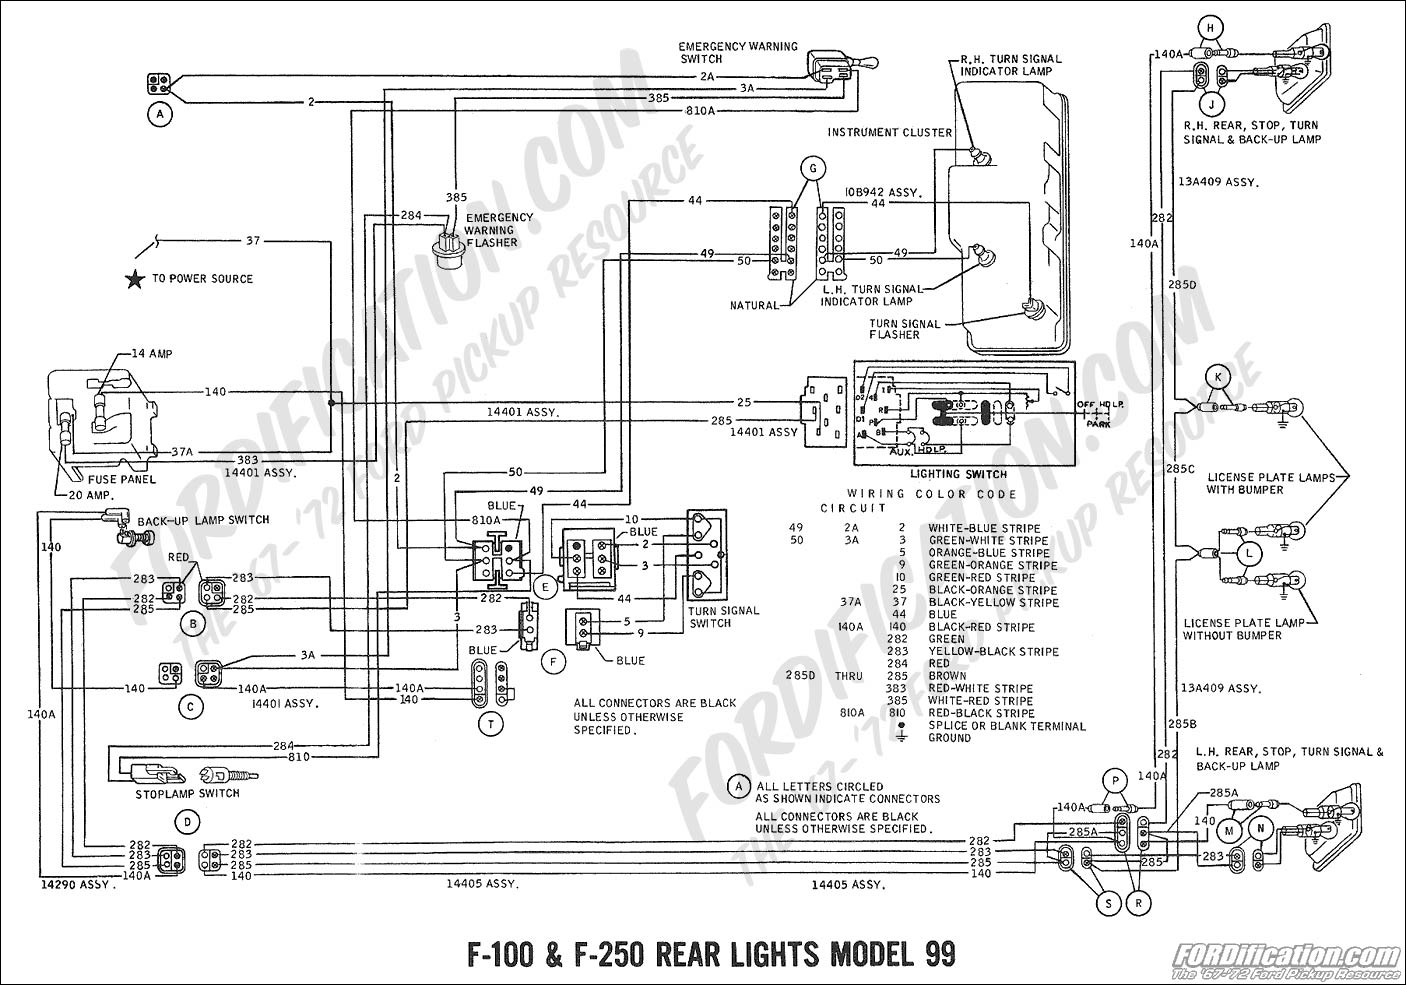 1990 chevy truck tail light wiring diagram with Viewtopic on 66k9o Gm 1500 Pickup Interior Lights 1994 Gmc Pickup Not as well Remove Ignition Switch On 1975 Chevy Truck as well 95 Chevy Corsica Engine Diagram besides Showthread besides 1997 Chevrolet S10 Sonoma Wiring Diagram And Electrical System Schematics.